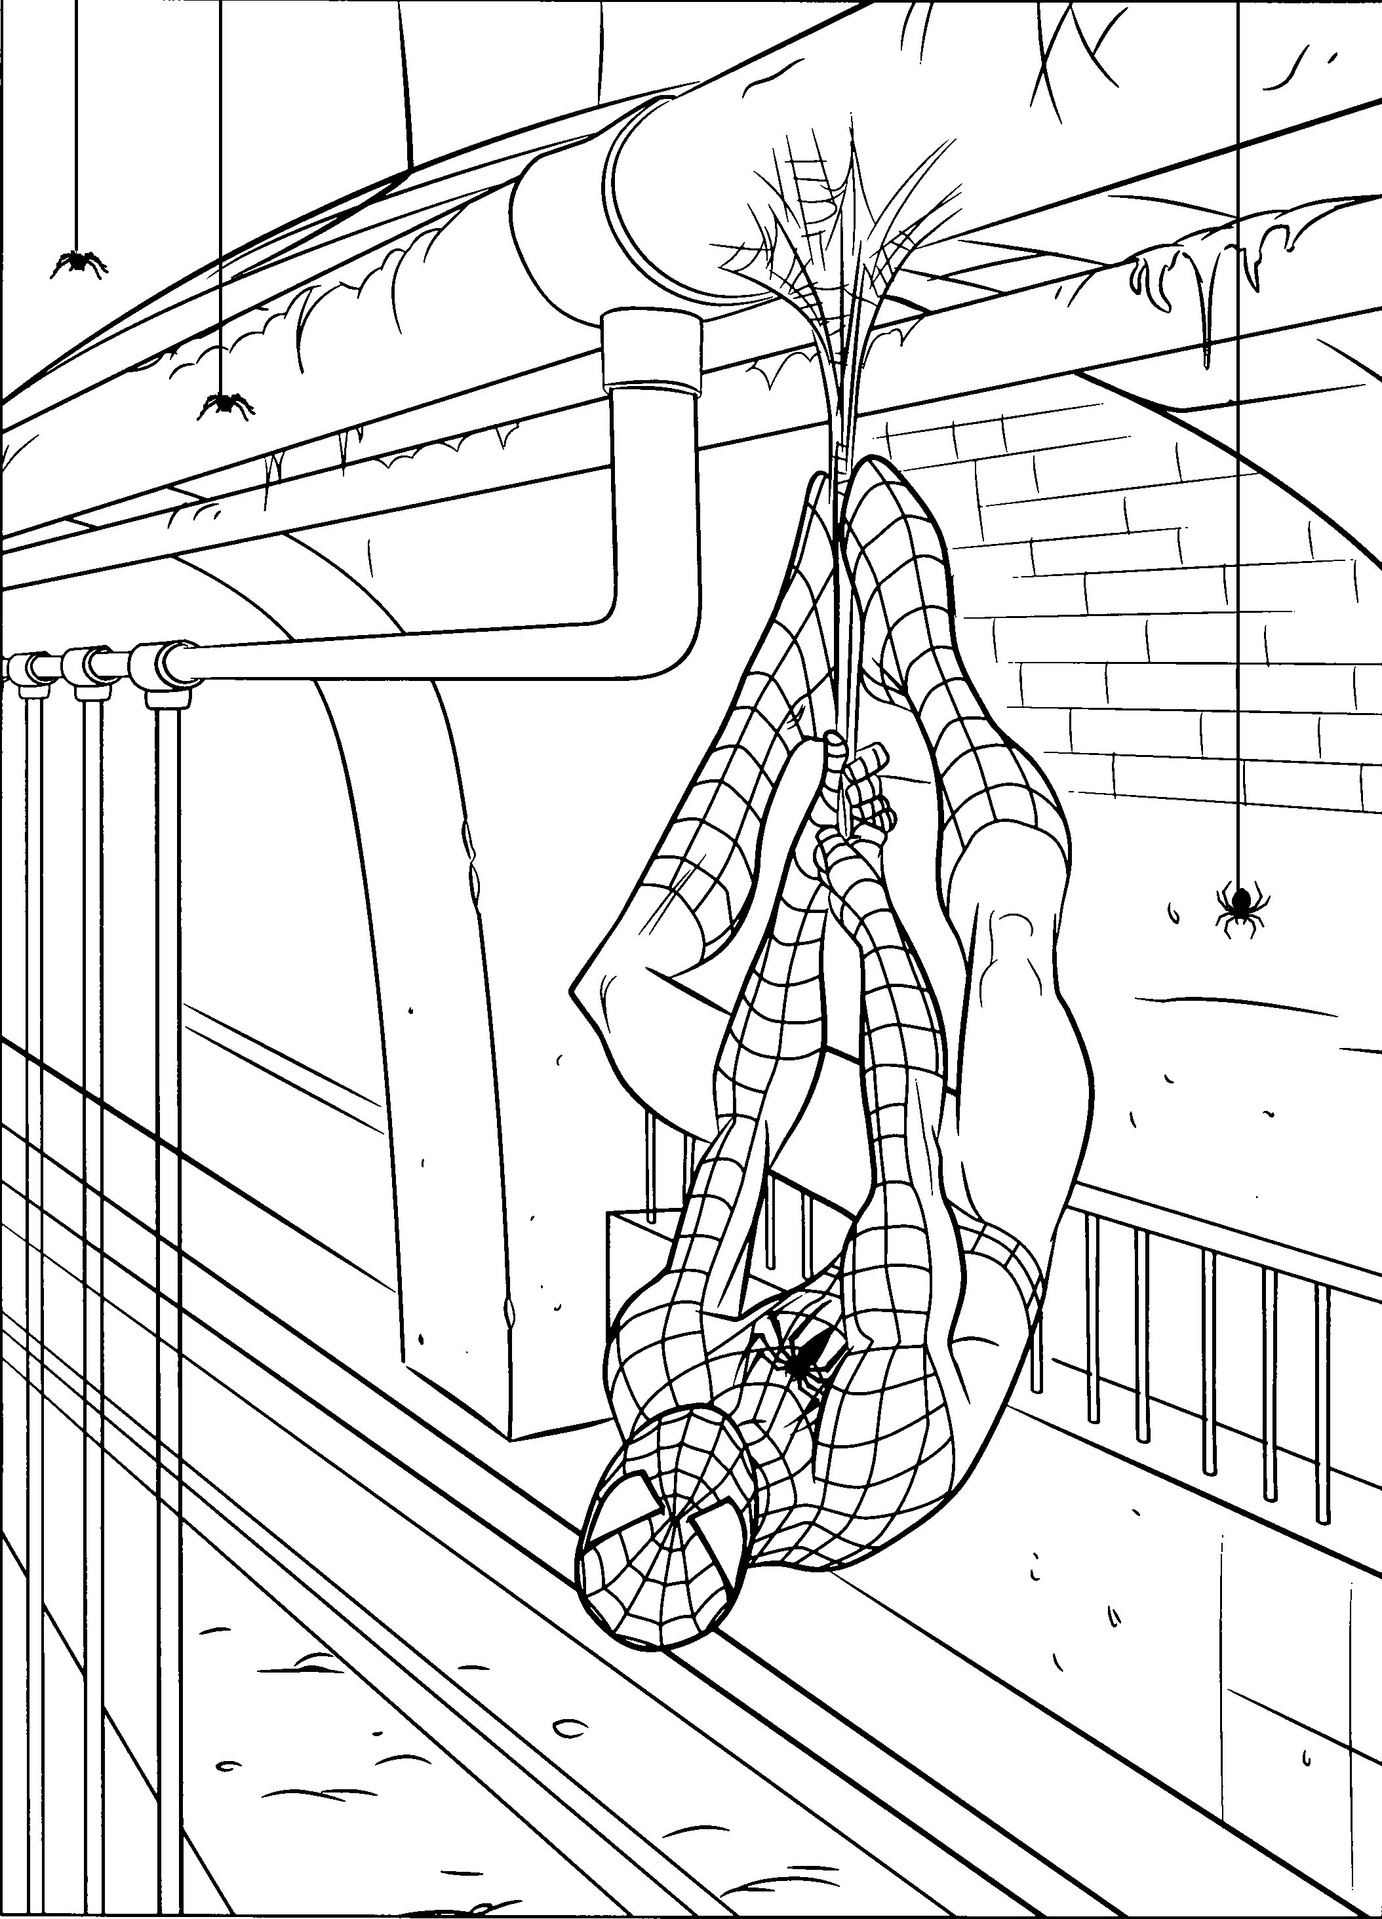 spiderman printable coloring sheets spiderman coloring page download for free print printable coloring sheets spiderman